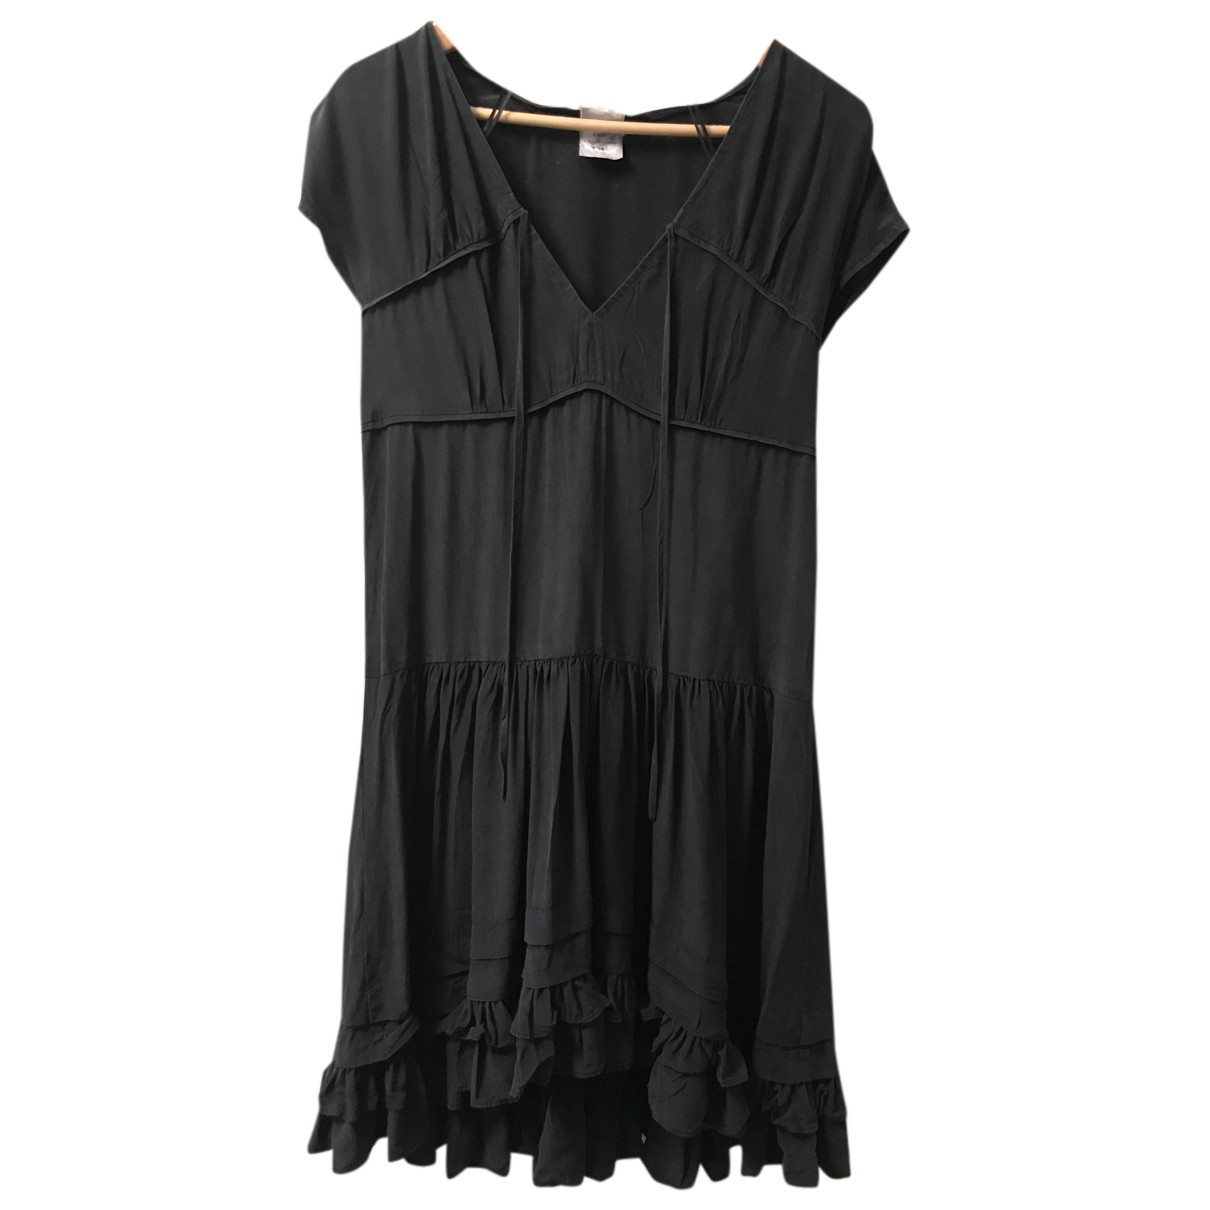 Chloé N Black Silk dress for Women 36 FR